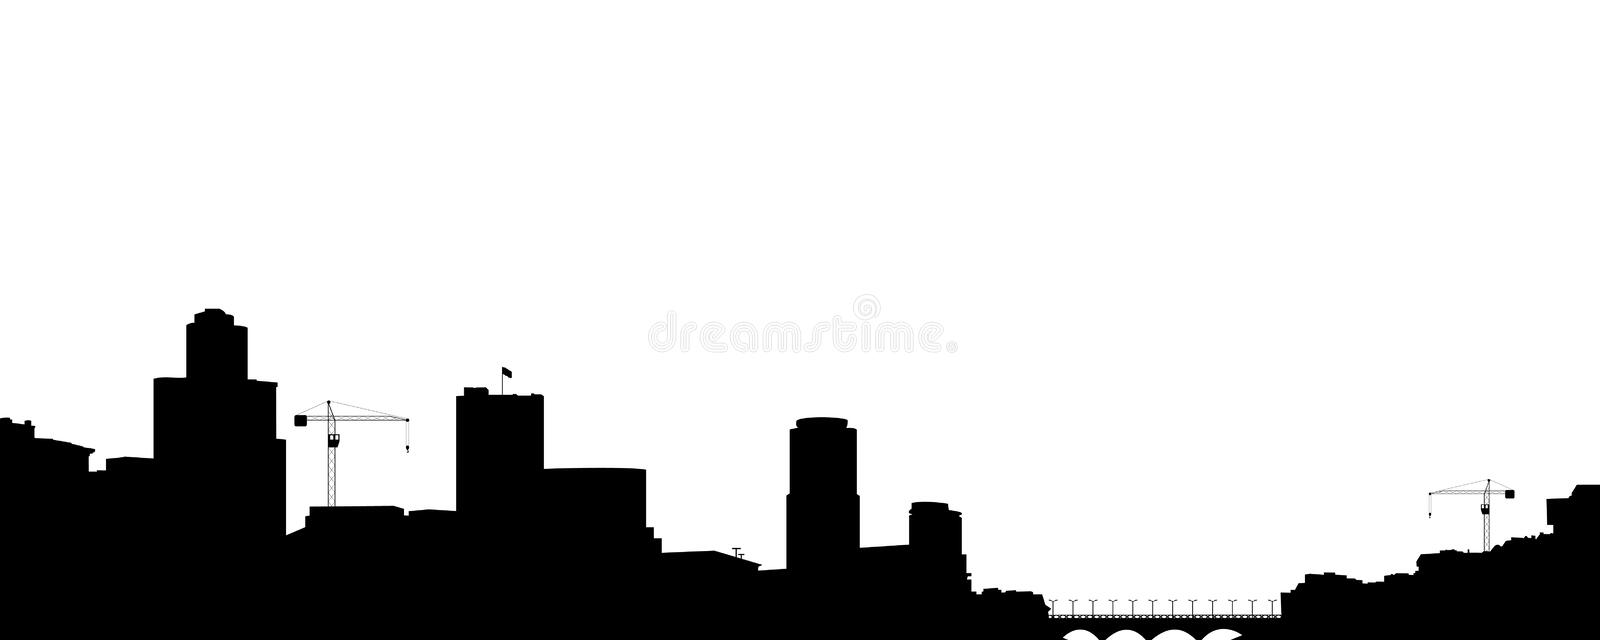 Silhouette of the town. vector illustration